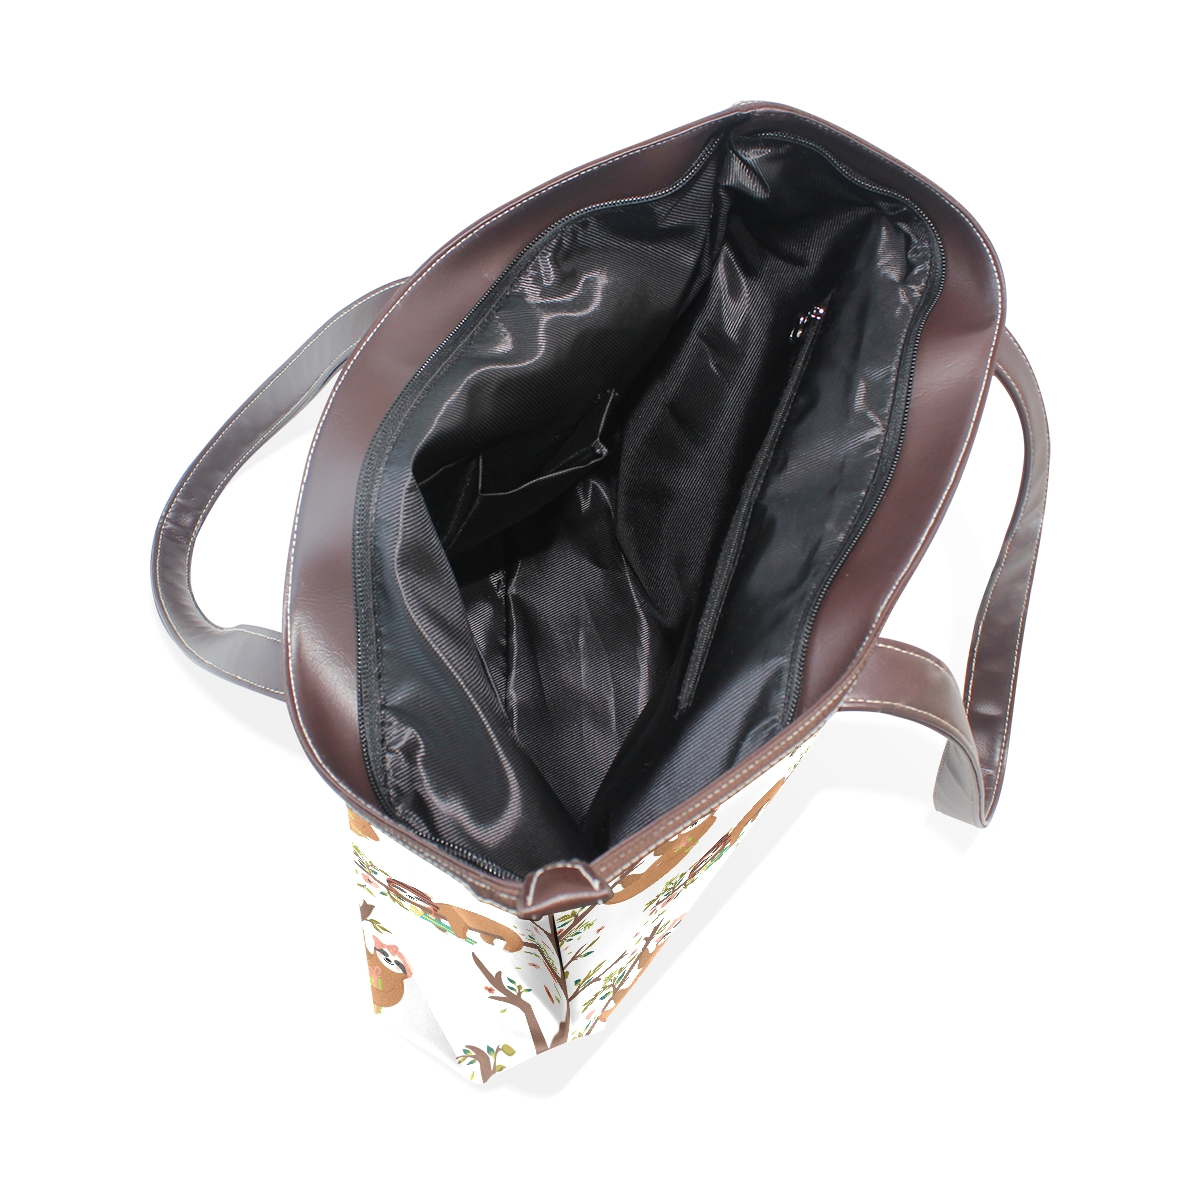 By Dhl Or Ems 50pcs Casual Candy Color Handbags Fashion Clutches Ladies Party Purse Women Crossbody Shoulder Messenger Bags To Suit The PeopleS Convenience Shoulder Bags